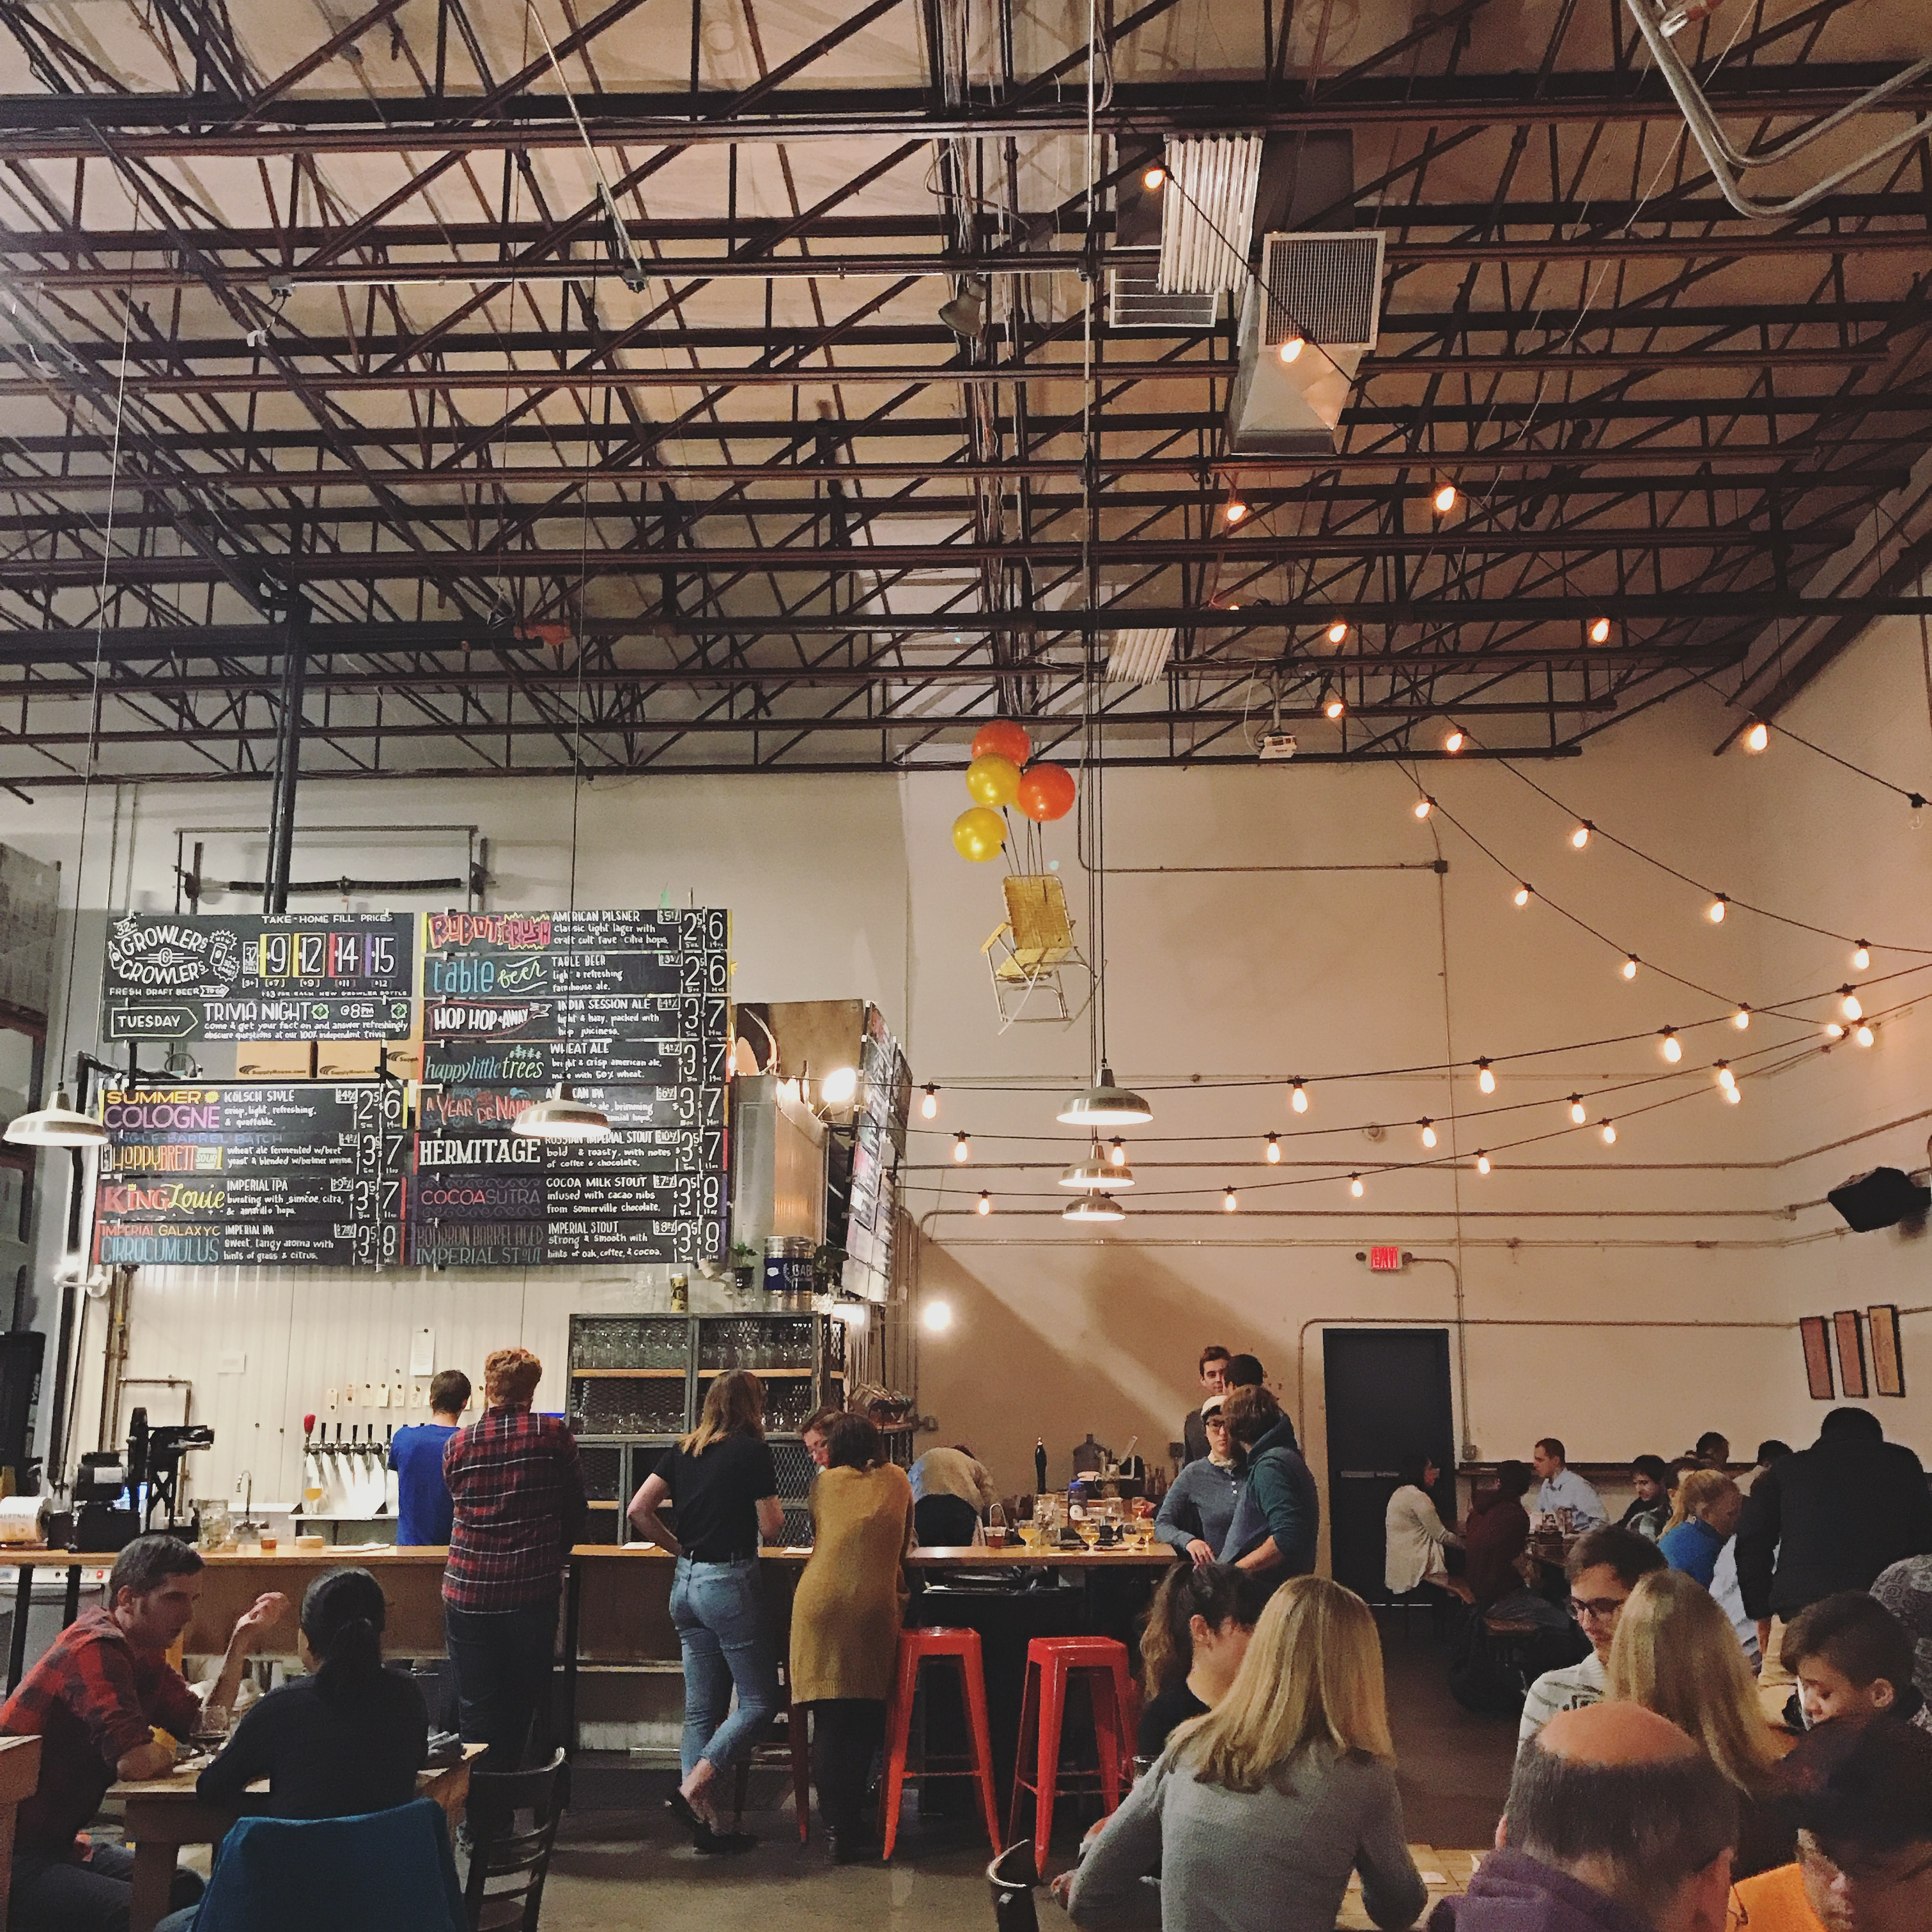 Towering ceilings accommodate a chalkboard beer list, a bar, and table seating inside a brewery